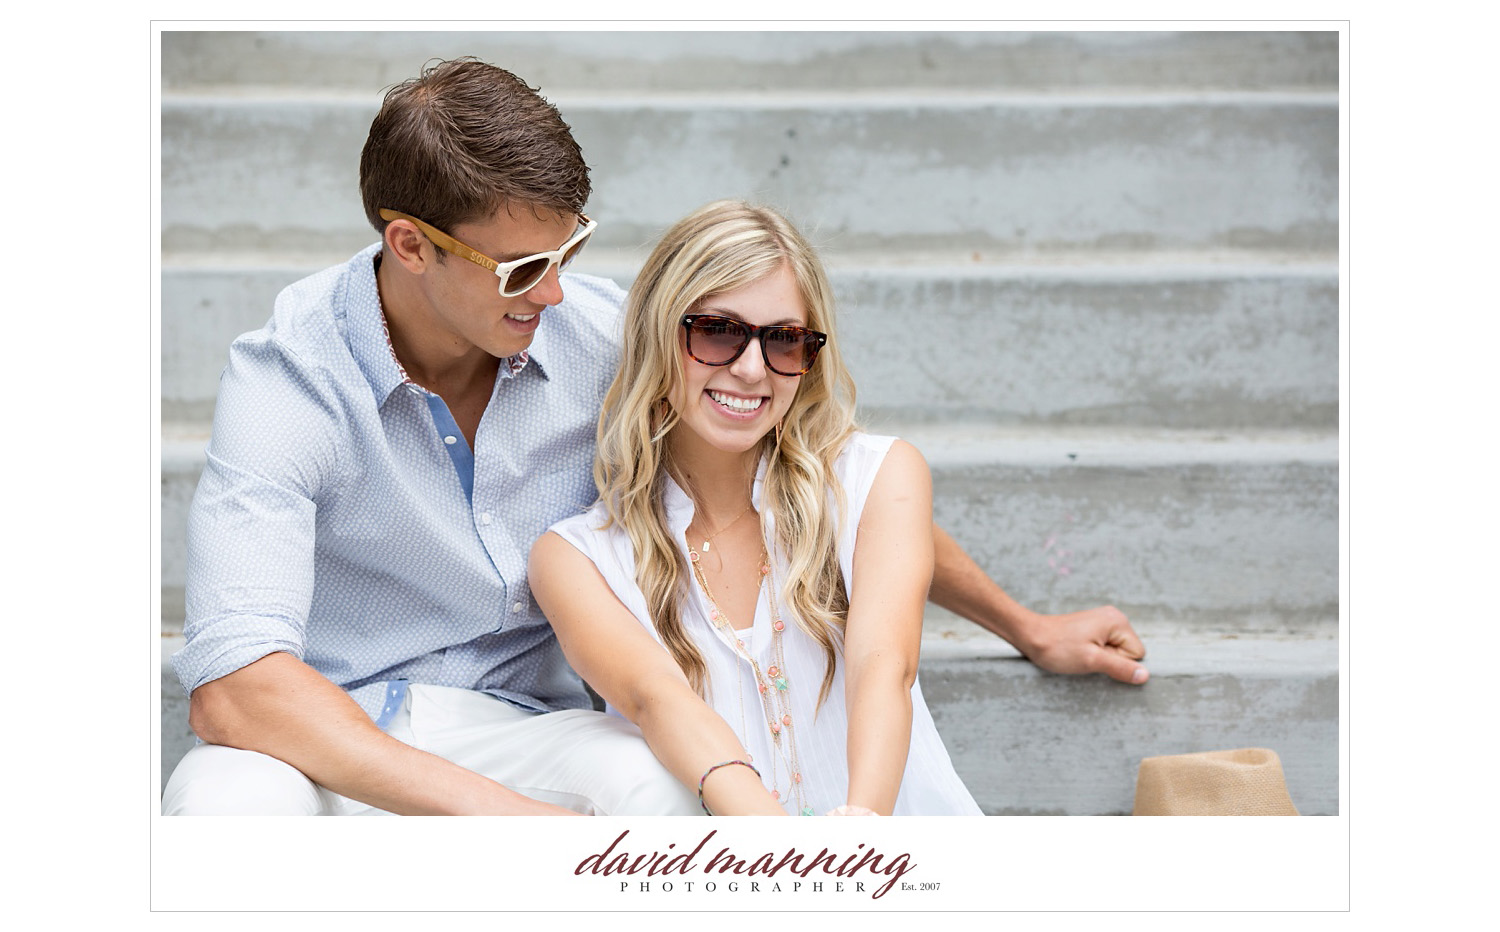 SOLO-Eyewear--Commercial-Editorial-Photos-David-Manning-Photographers-0018.jpg